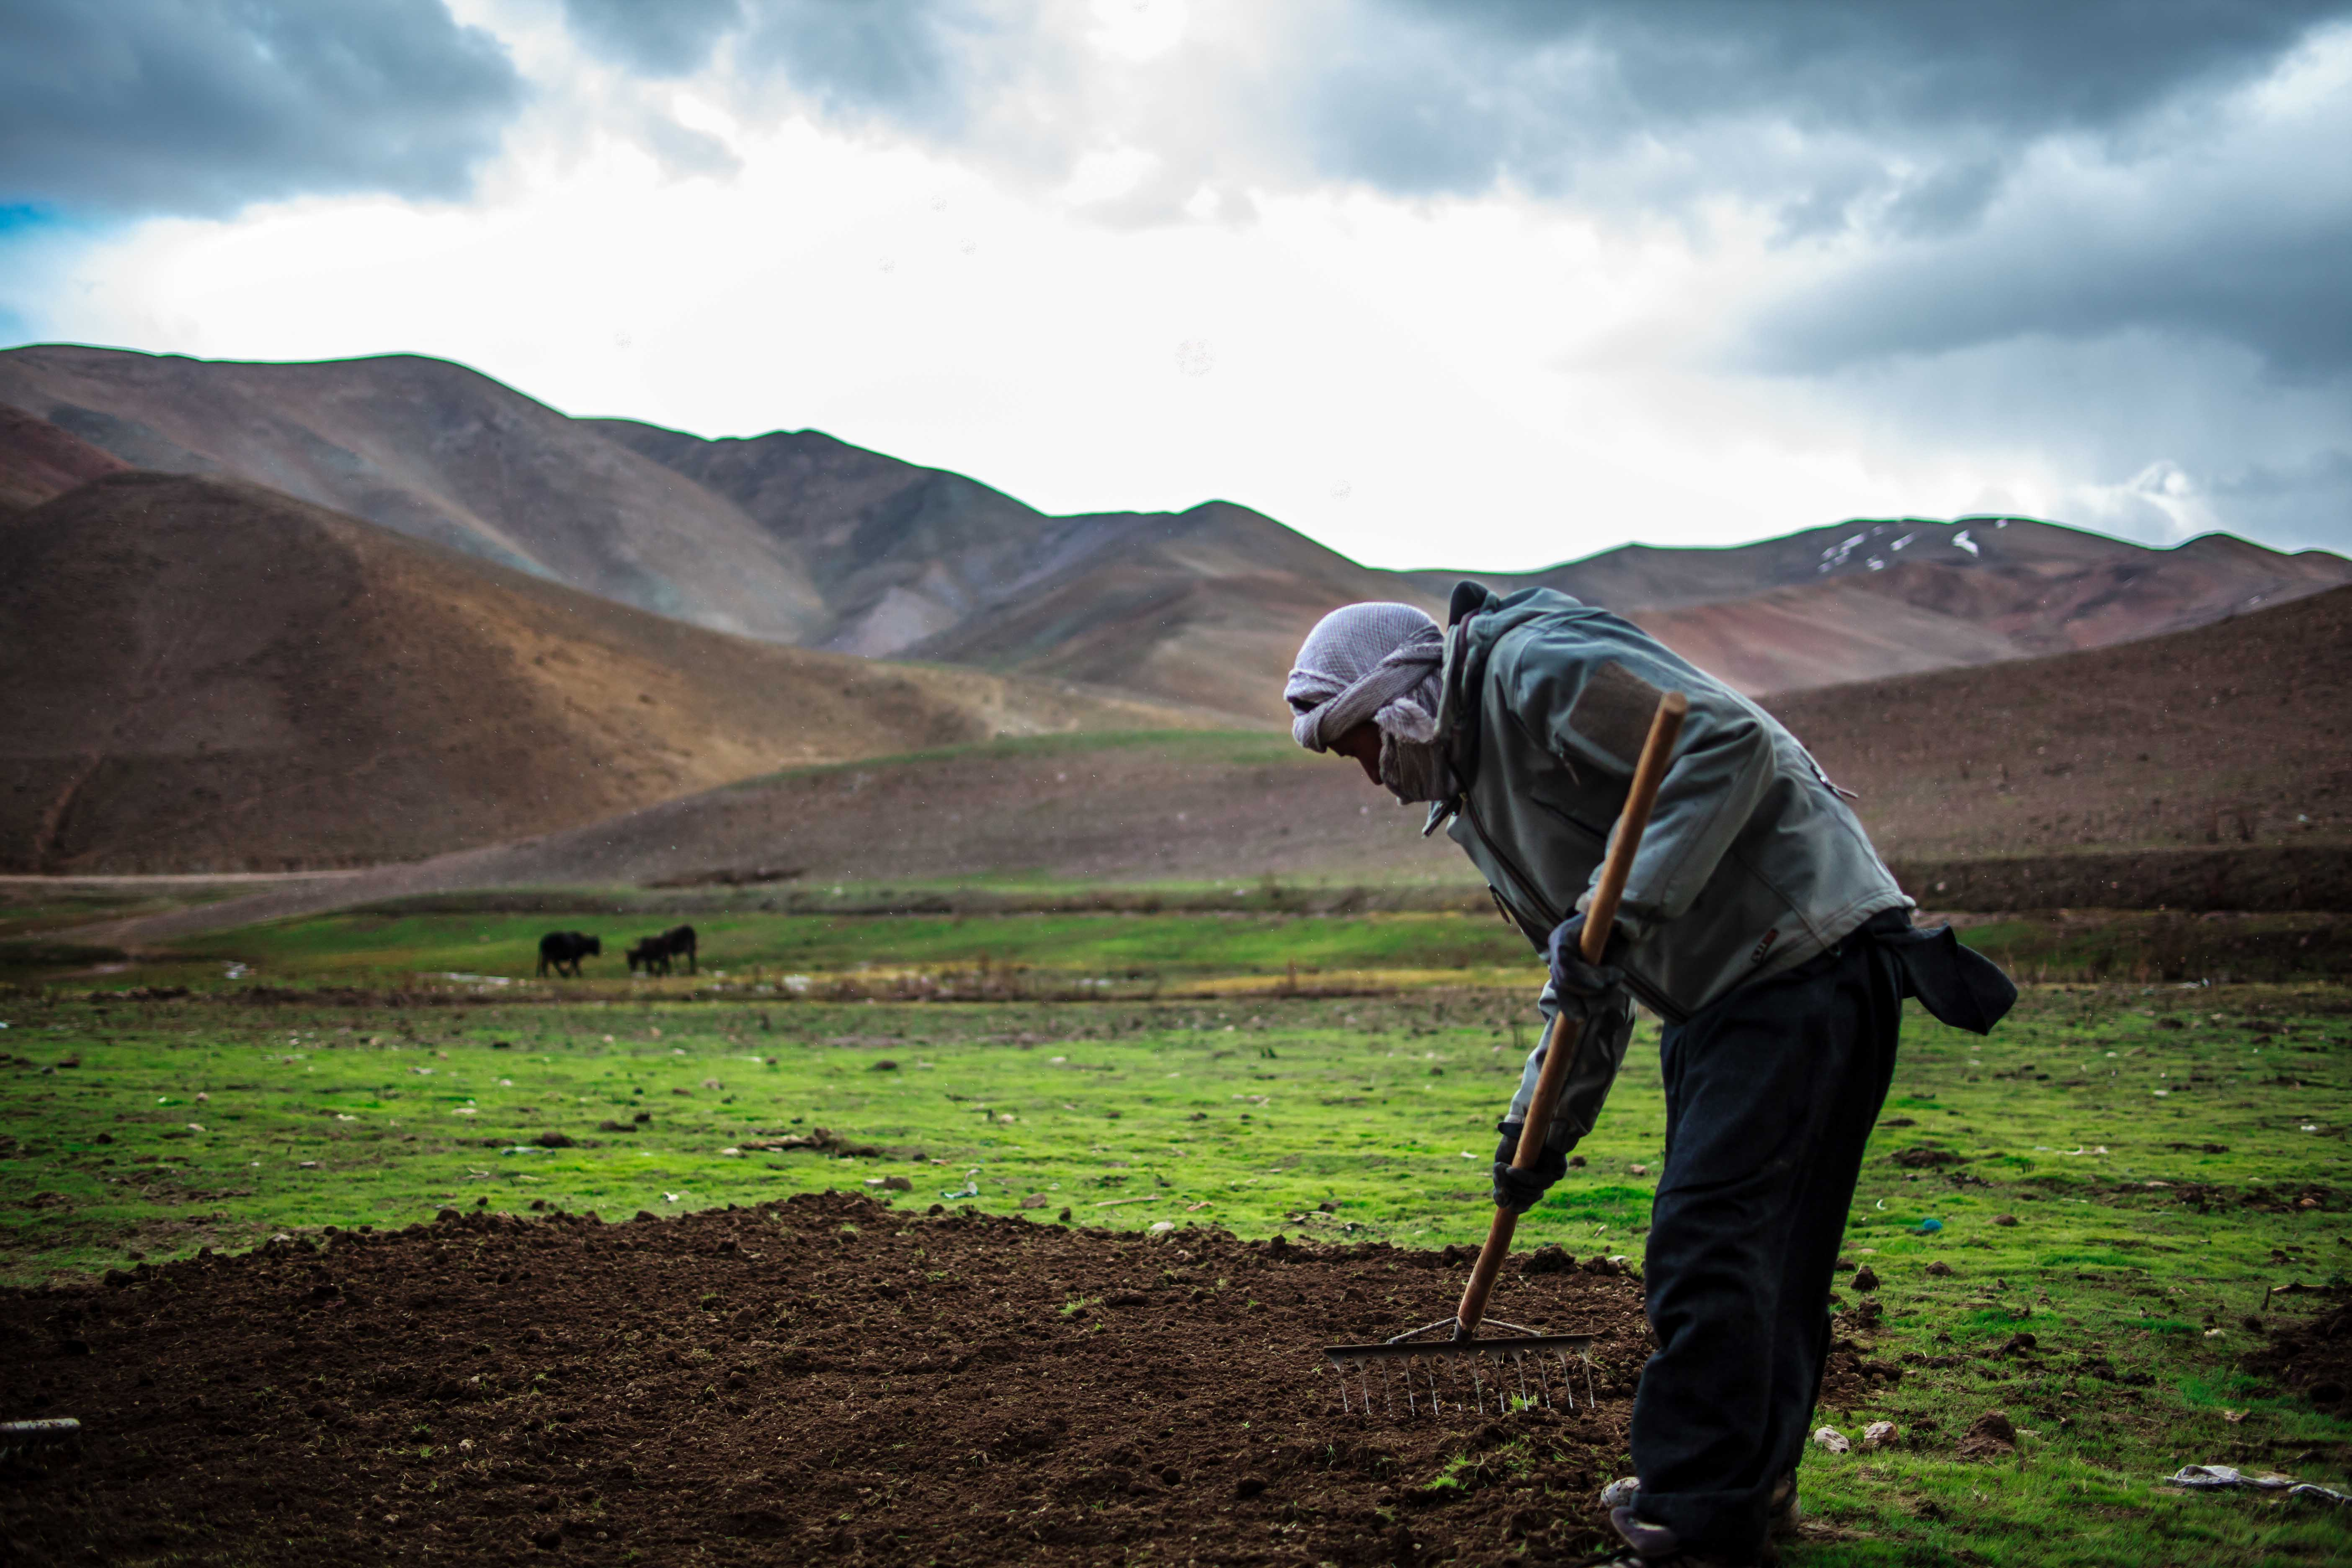 A man farming in the mountains of Afghanistan